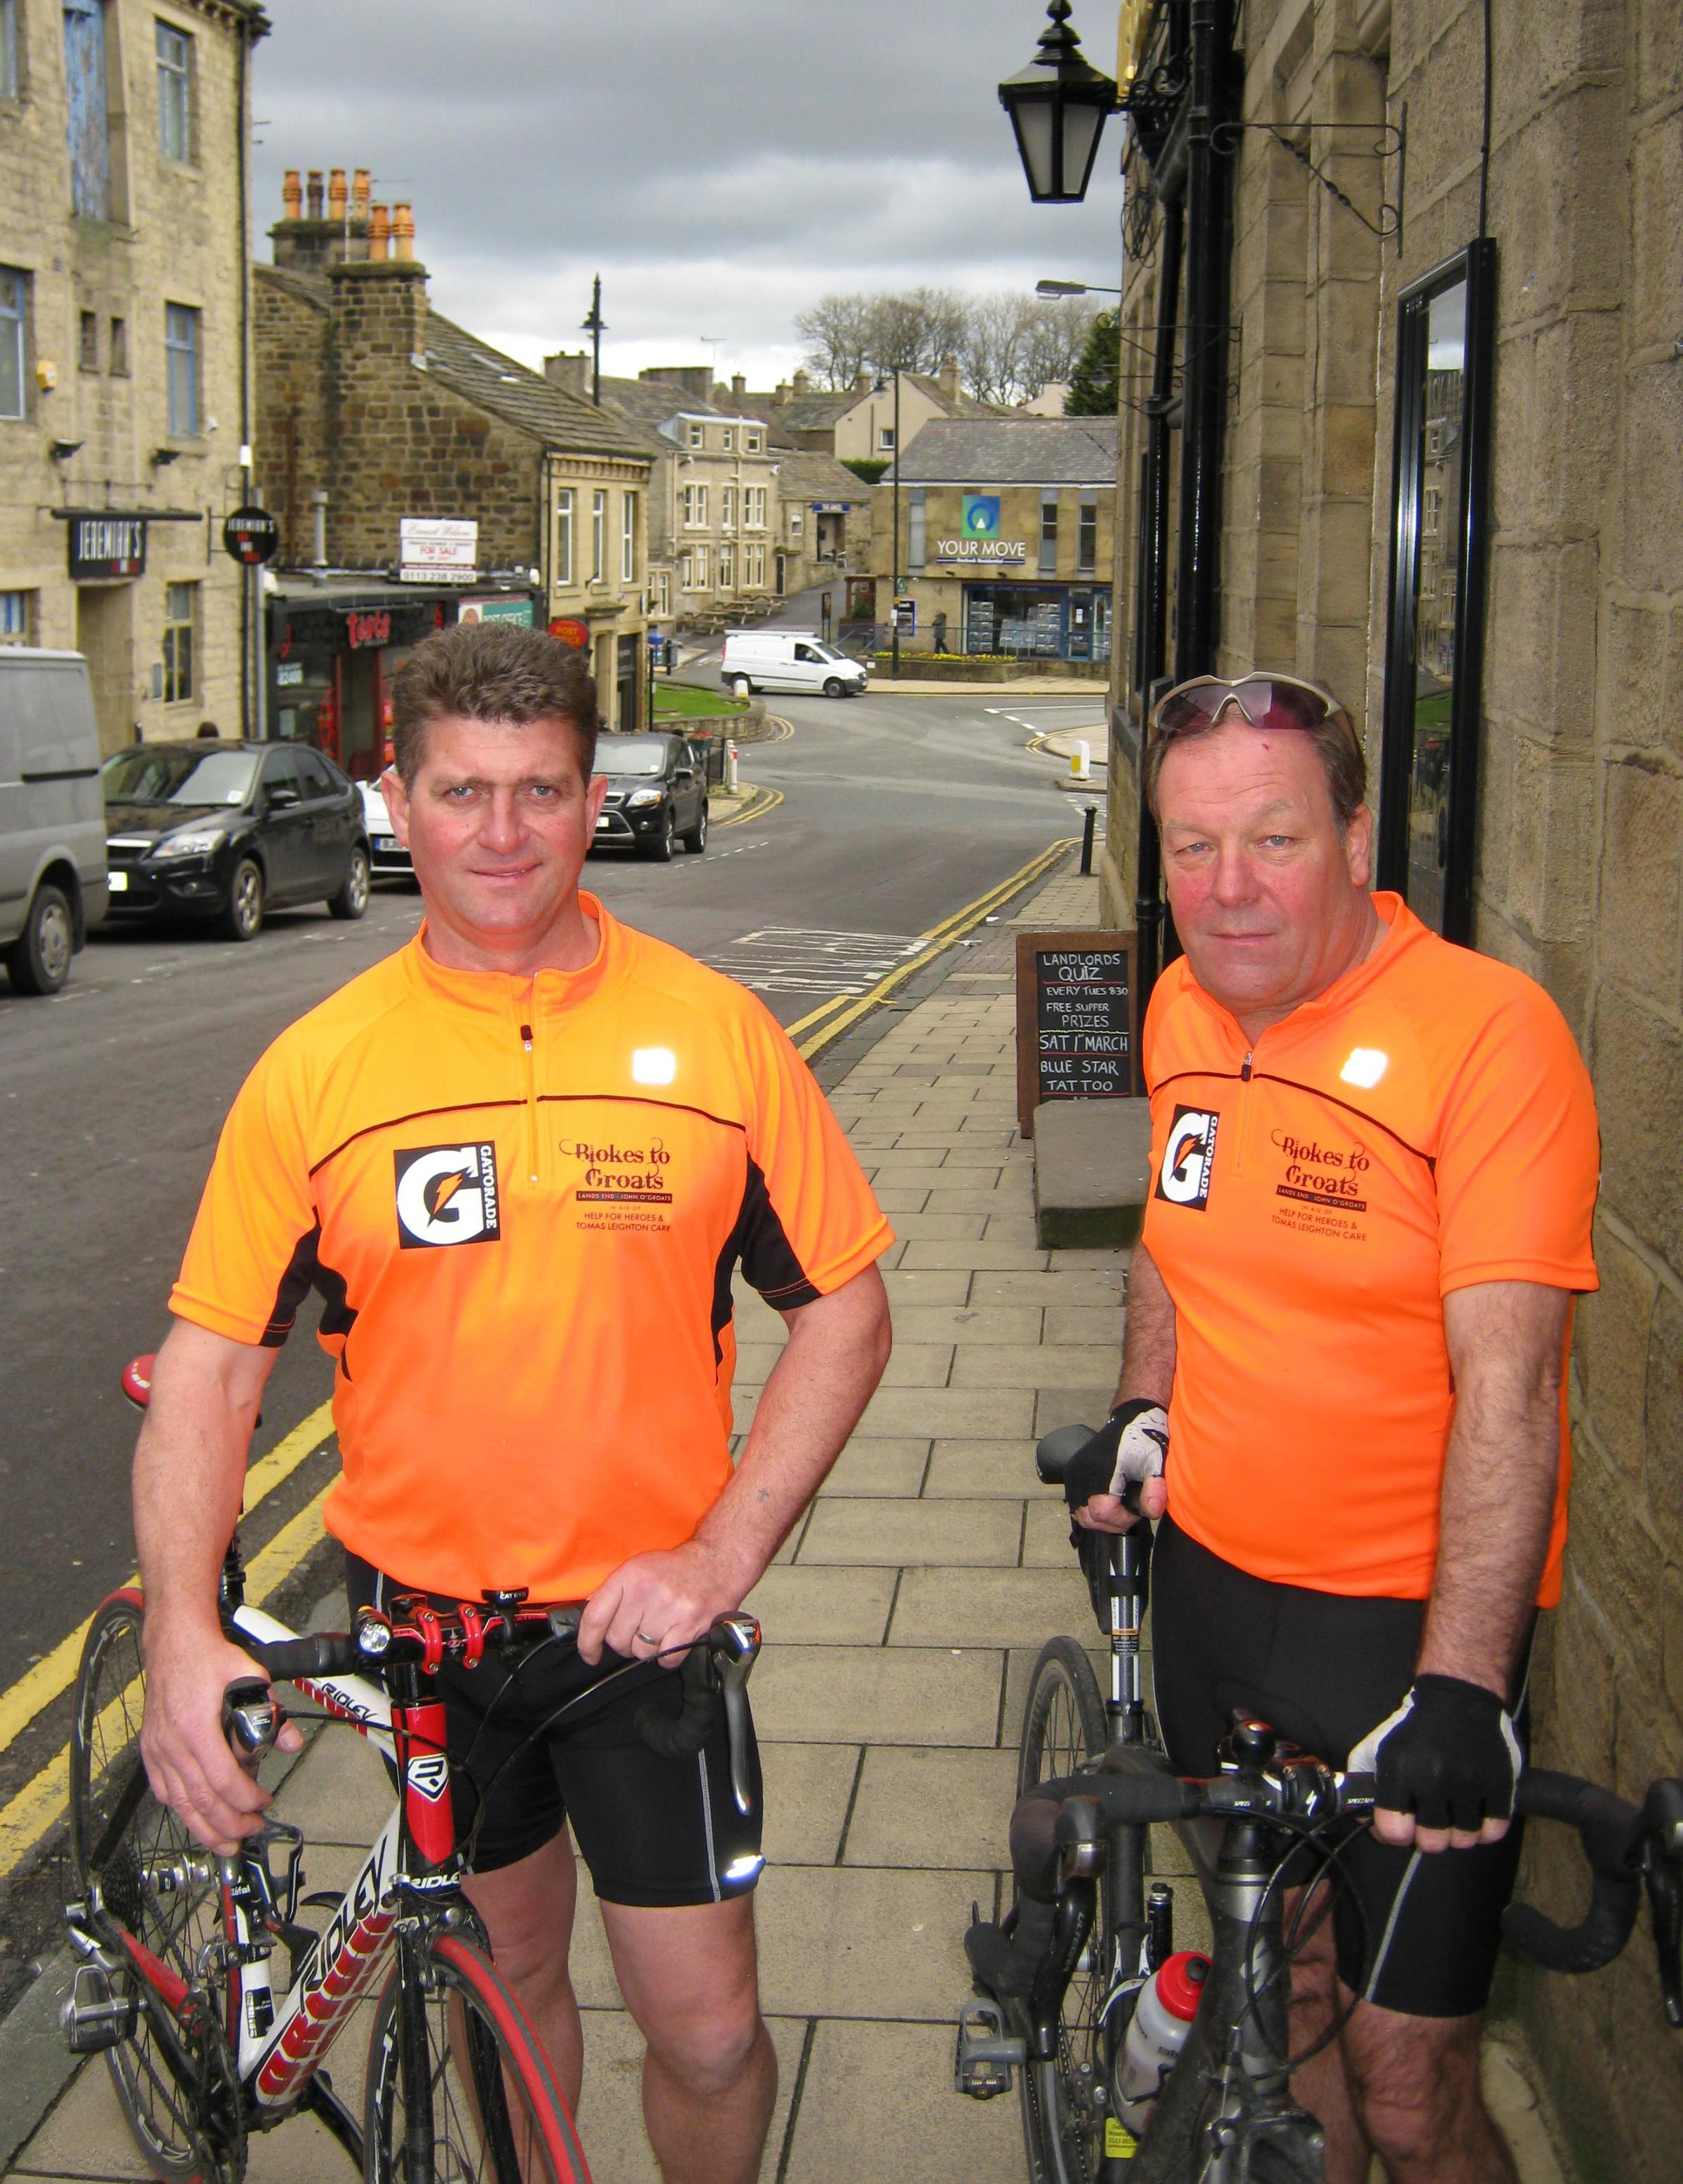 Paul Kearns (left) and Steve Tindall who will ride to